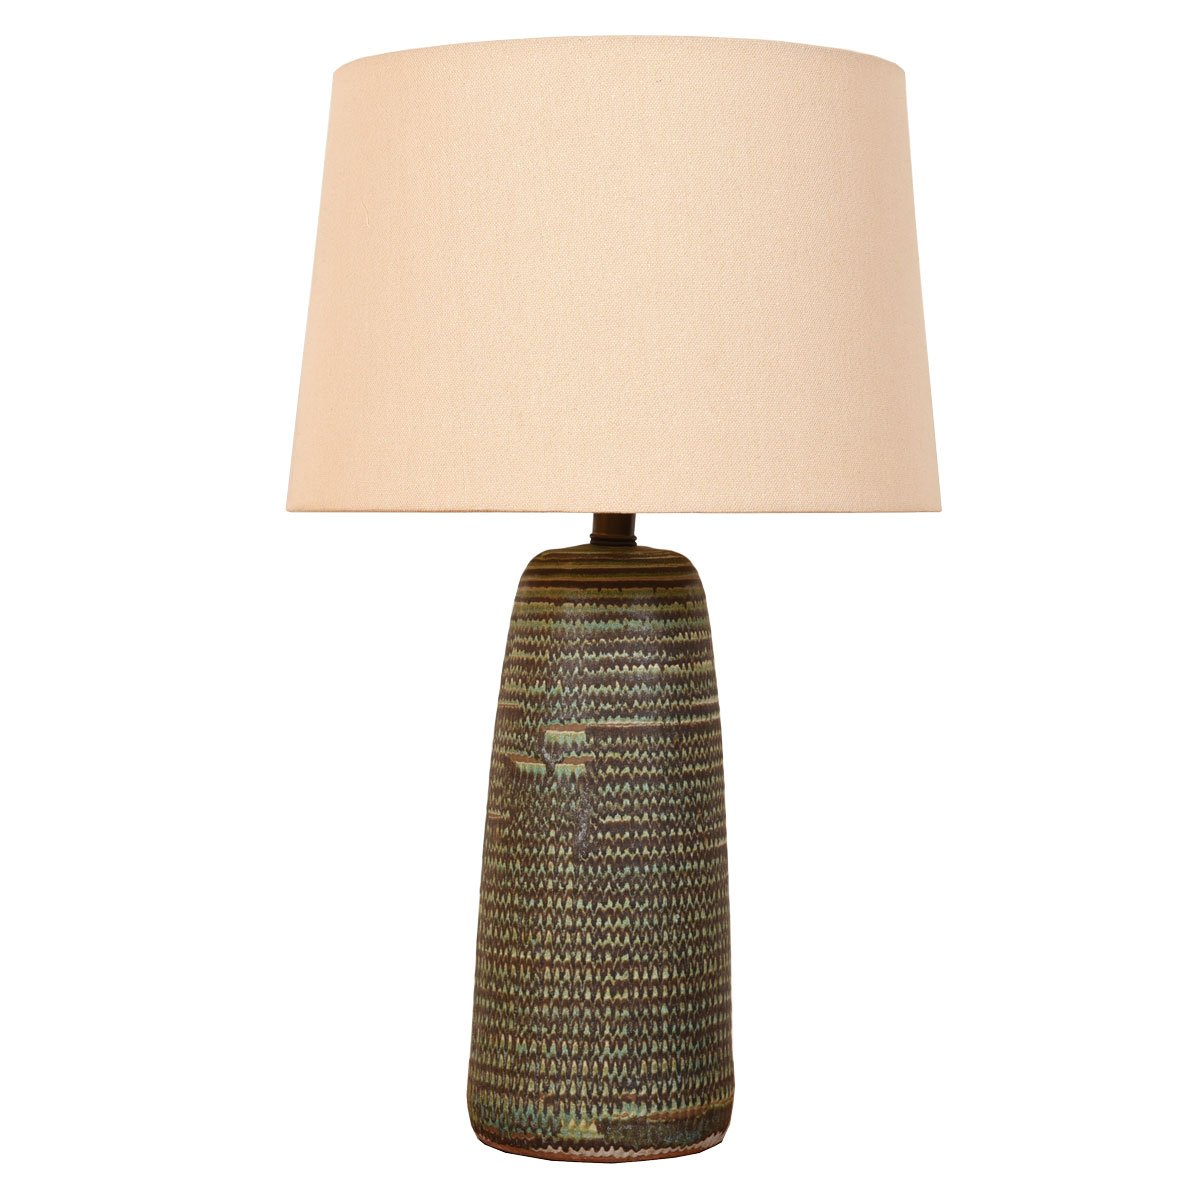 Italian Pottery Table Lamp